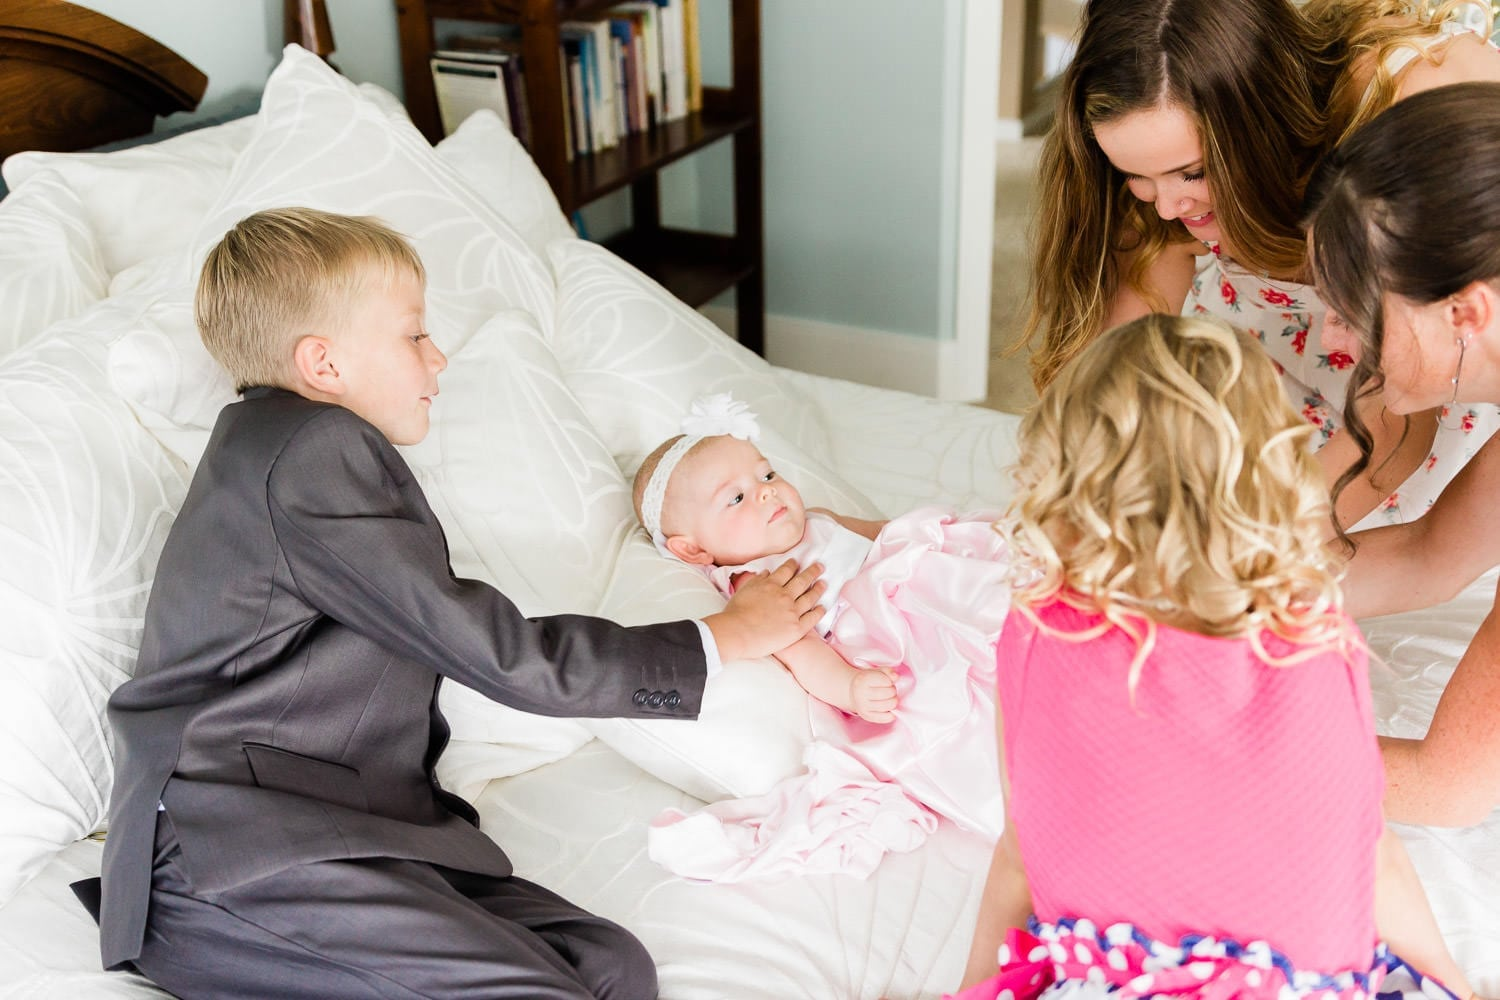 Family getting ready for a wedding | Vancouver wedding photographer